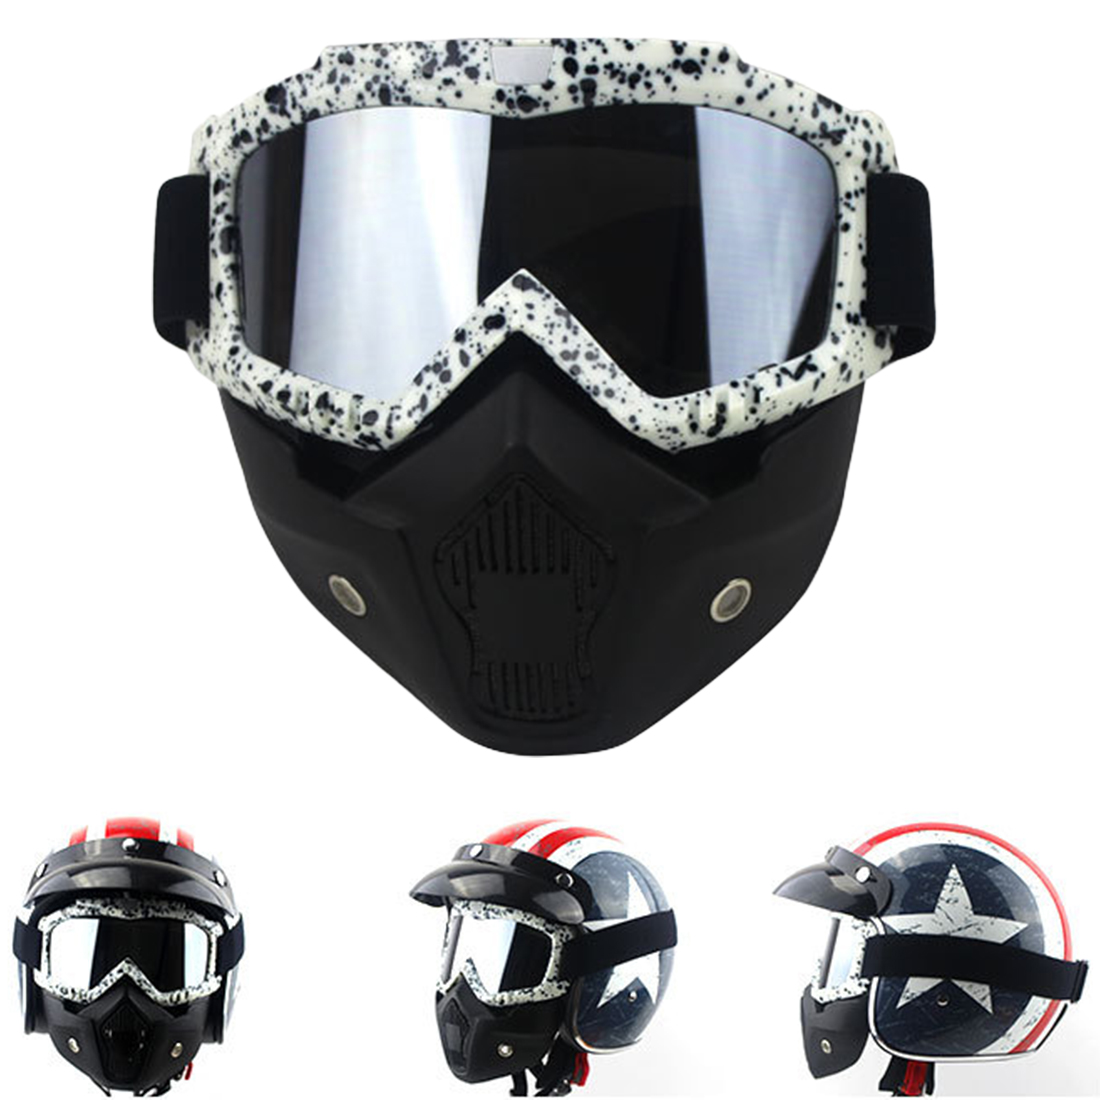 2018 Hot Fashion Double Anti-fog Goggles Hot Motorcycle Retro Halter Mask Cross Country Goggles Detachable Mask Breathable New